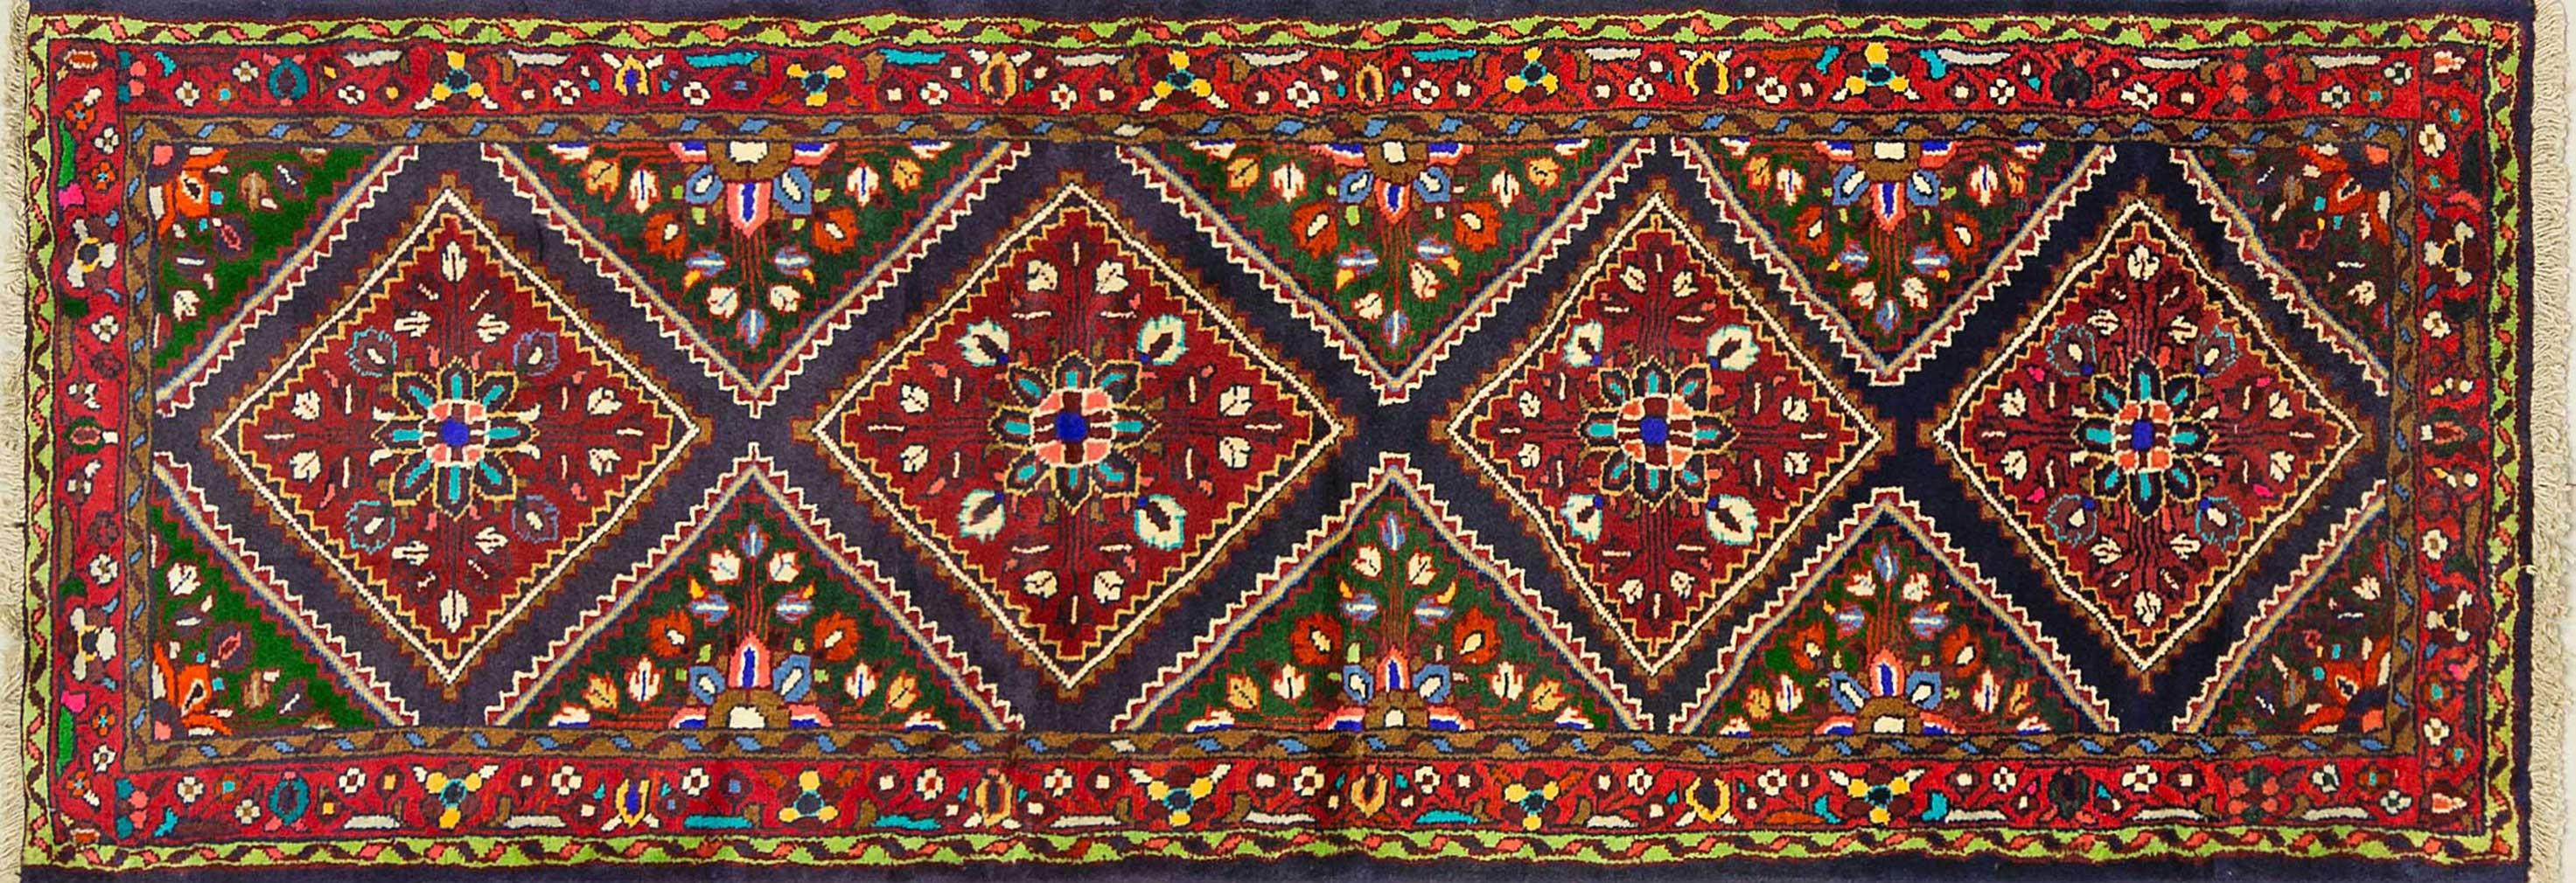 A Persian Hand Knotted Nahavand Runner, 220 x 78